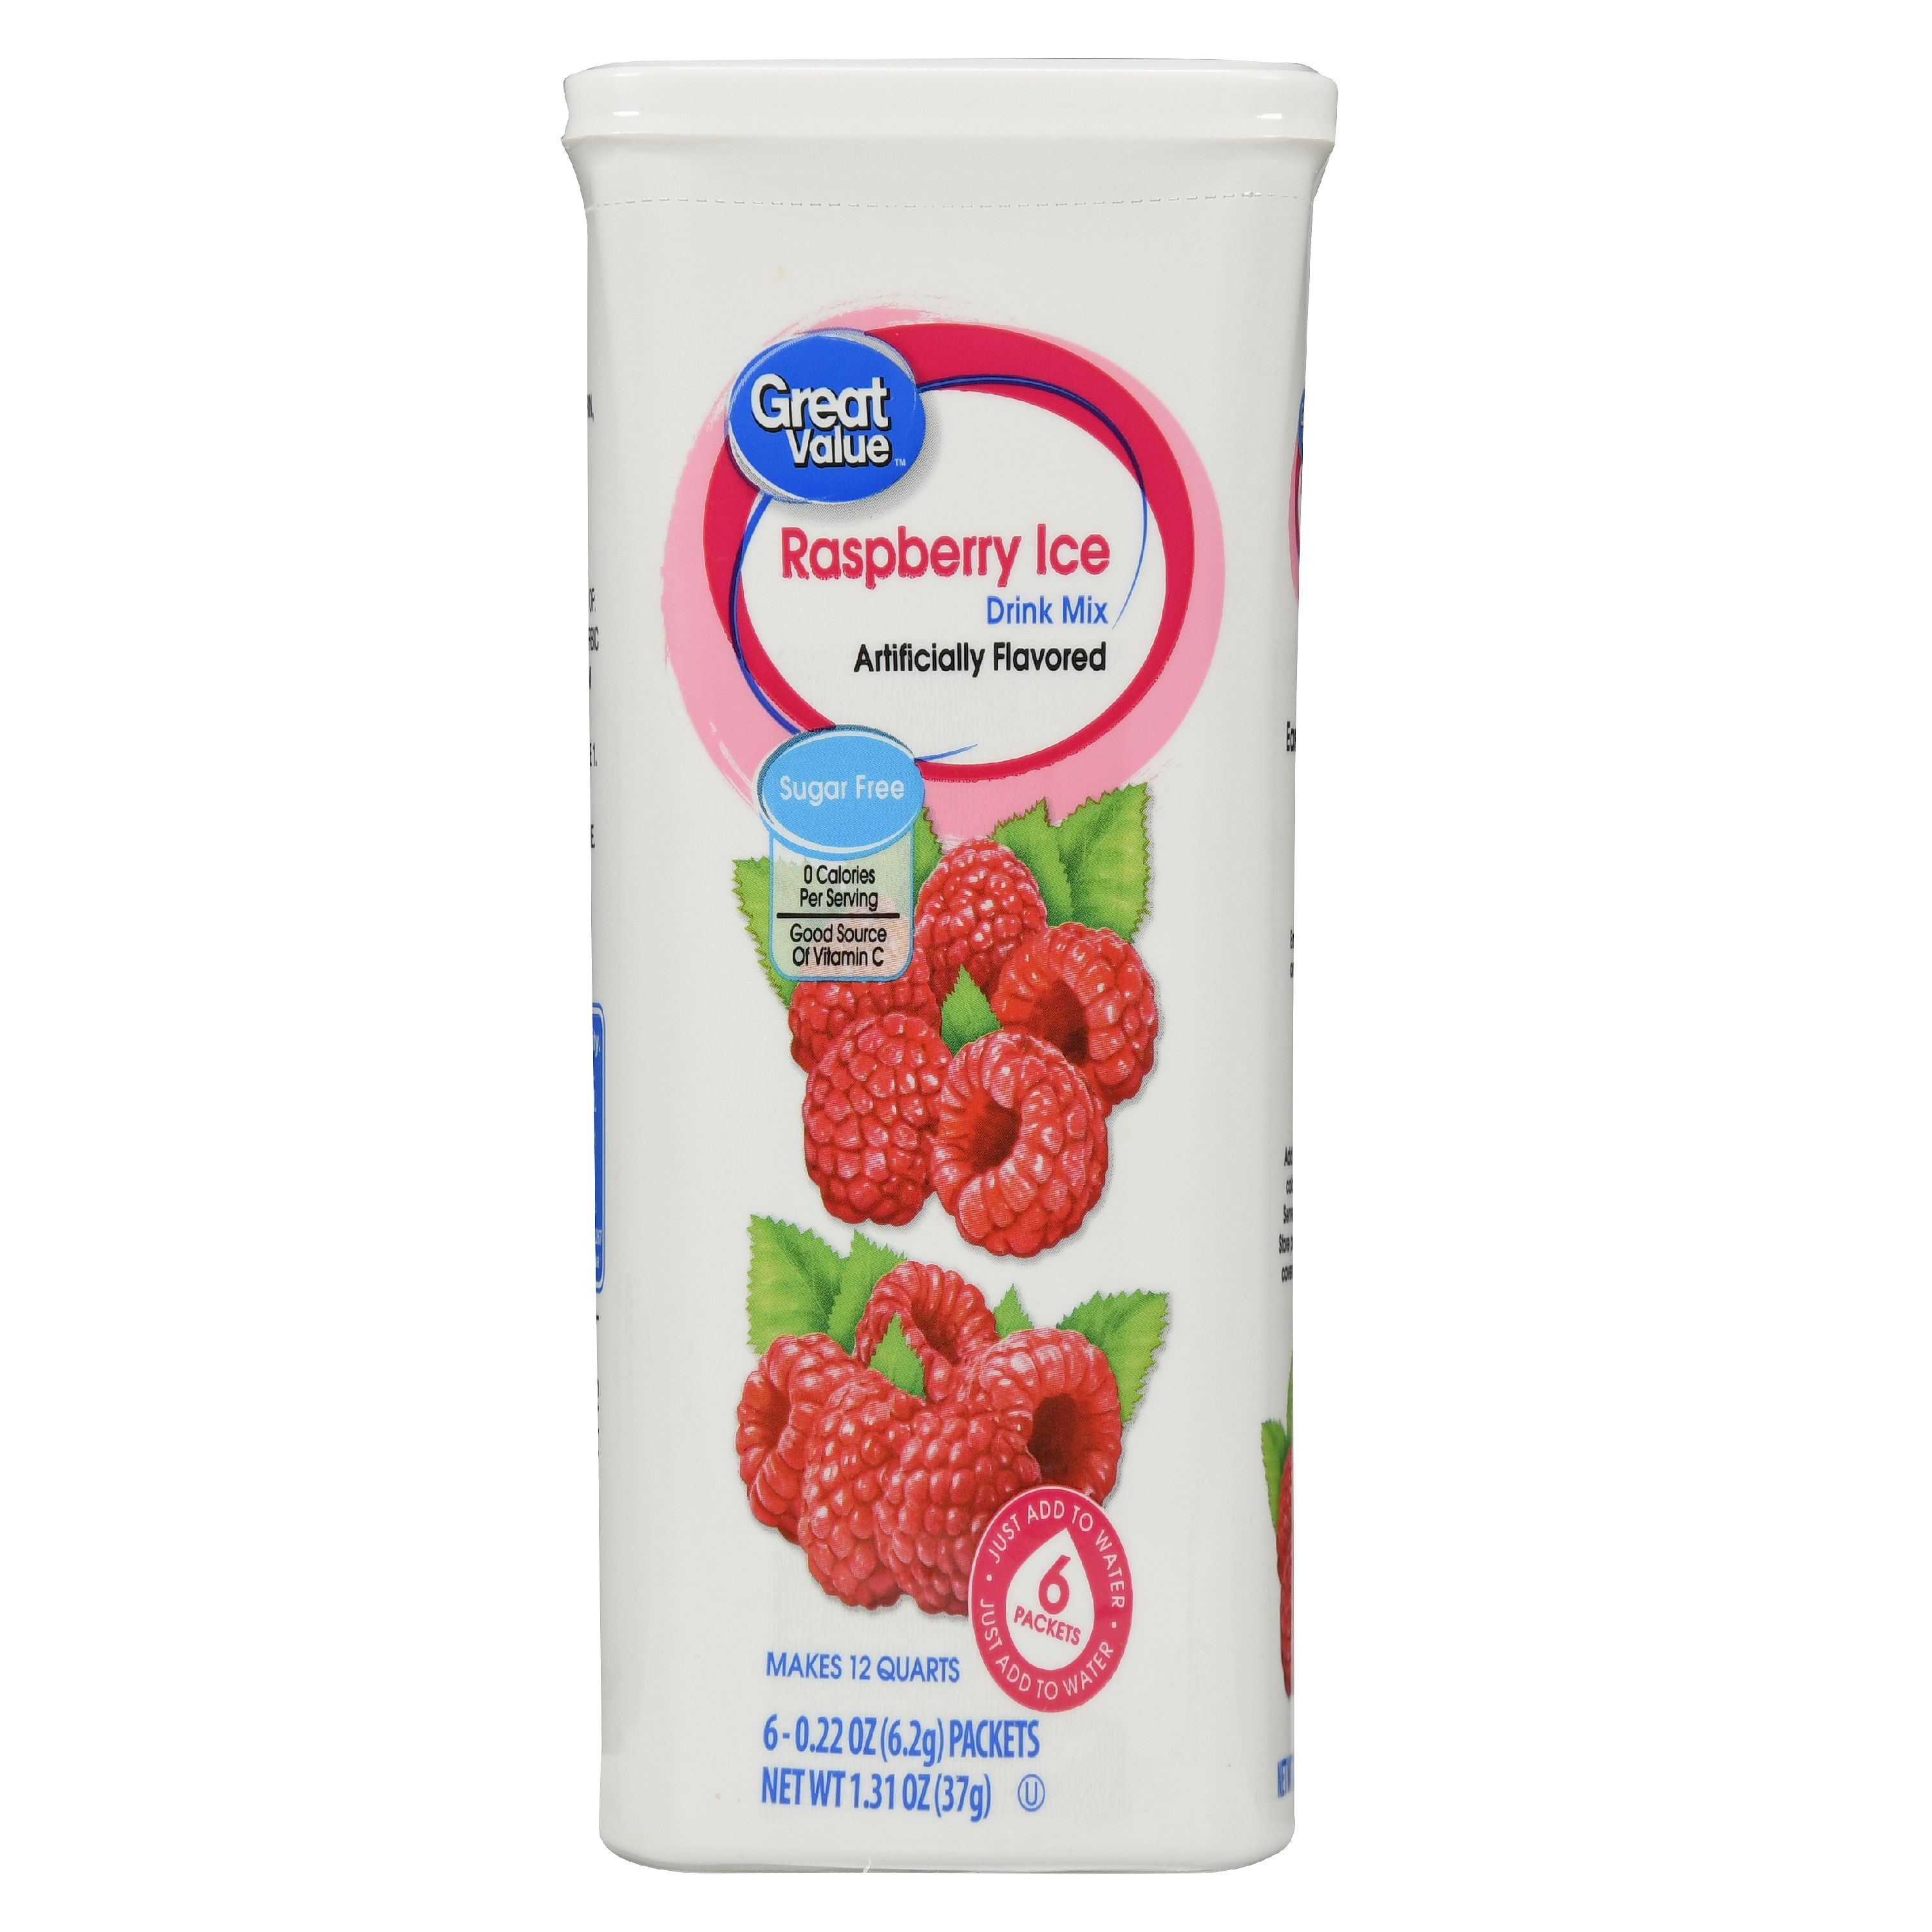 Great Value Drink Mix, Raspberry Ice, Sugar-Free, 1.31 oz, 6 Count